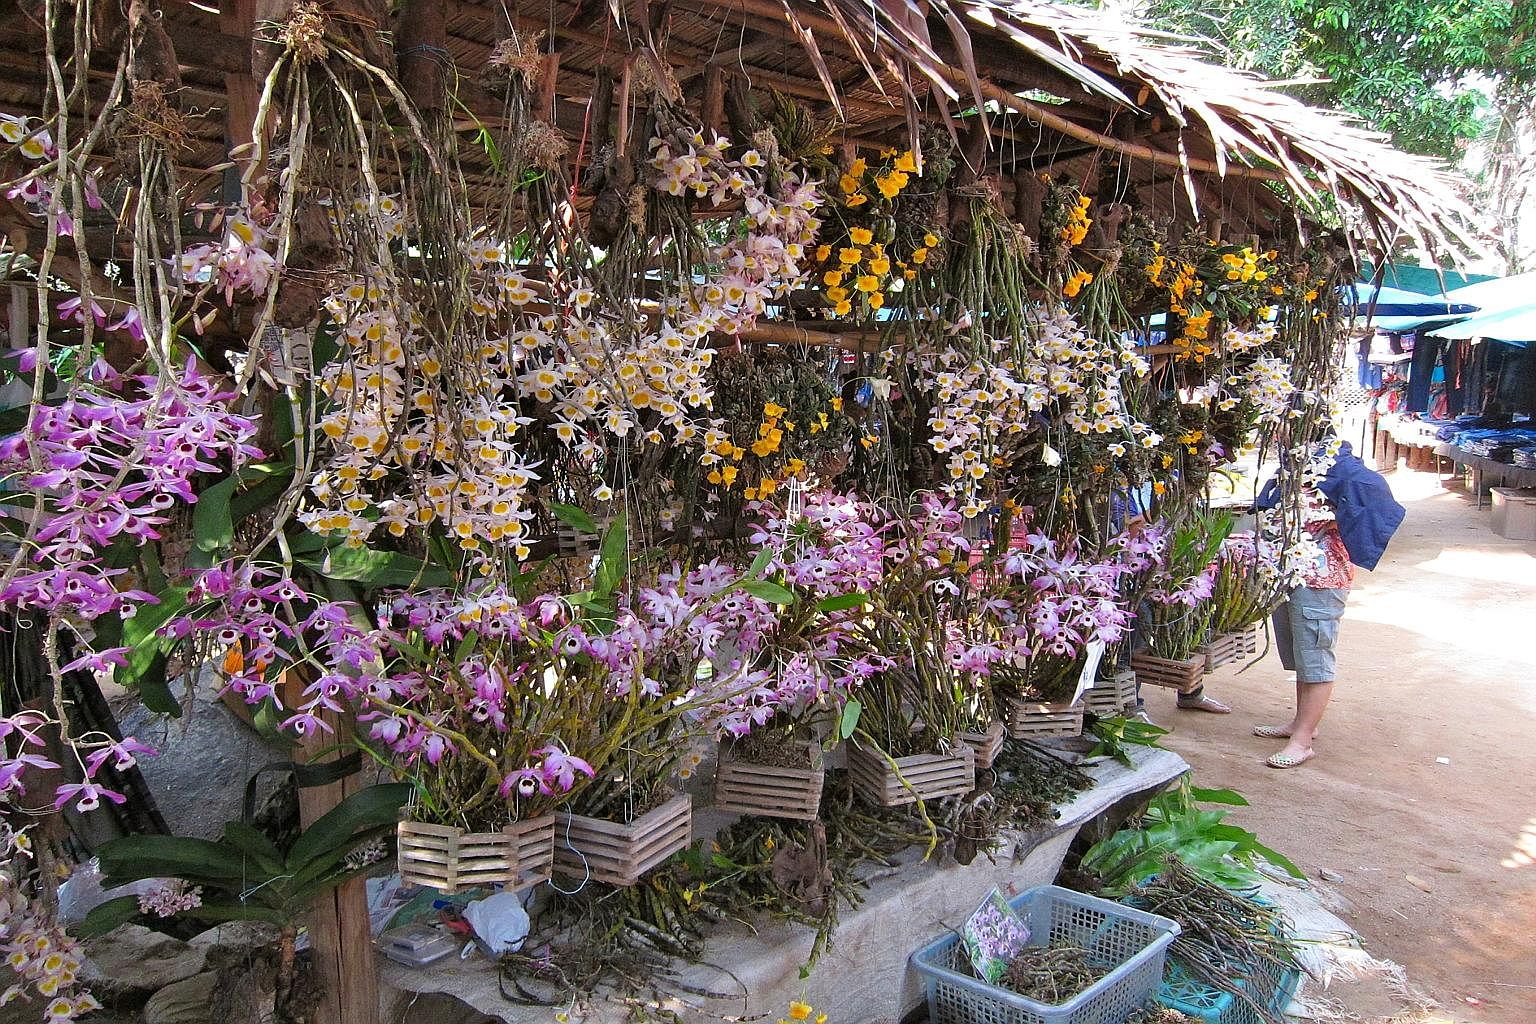 S-E Asia's blooming black market trade in wild orchids